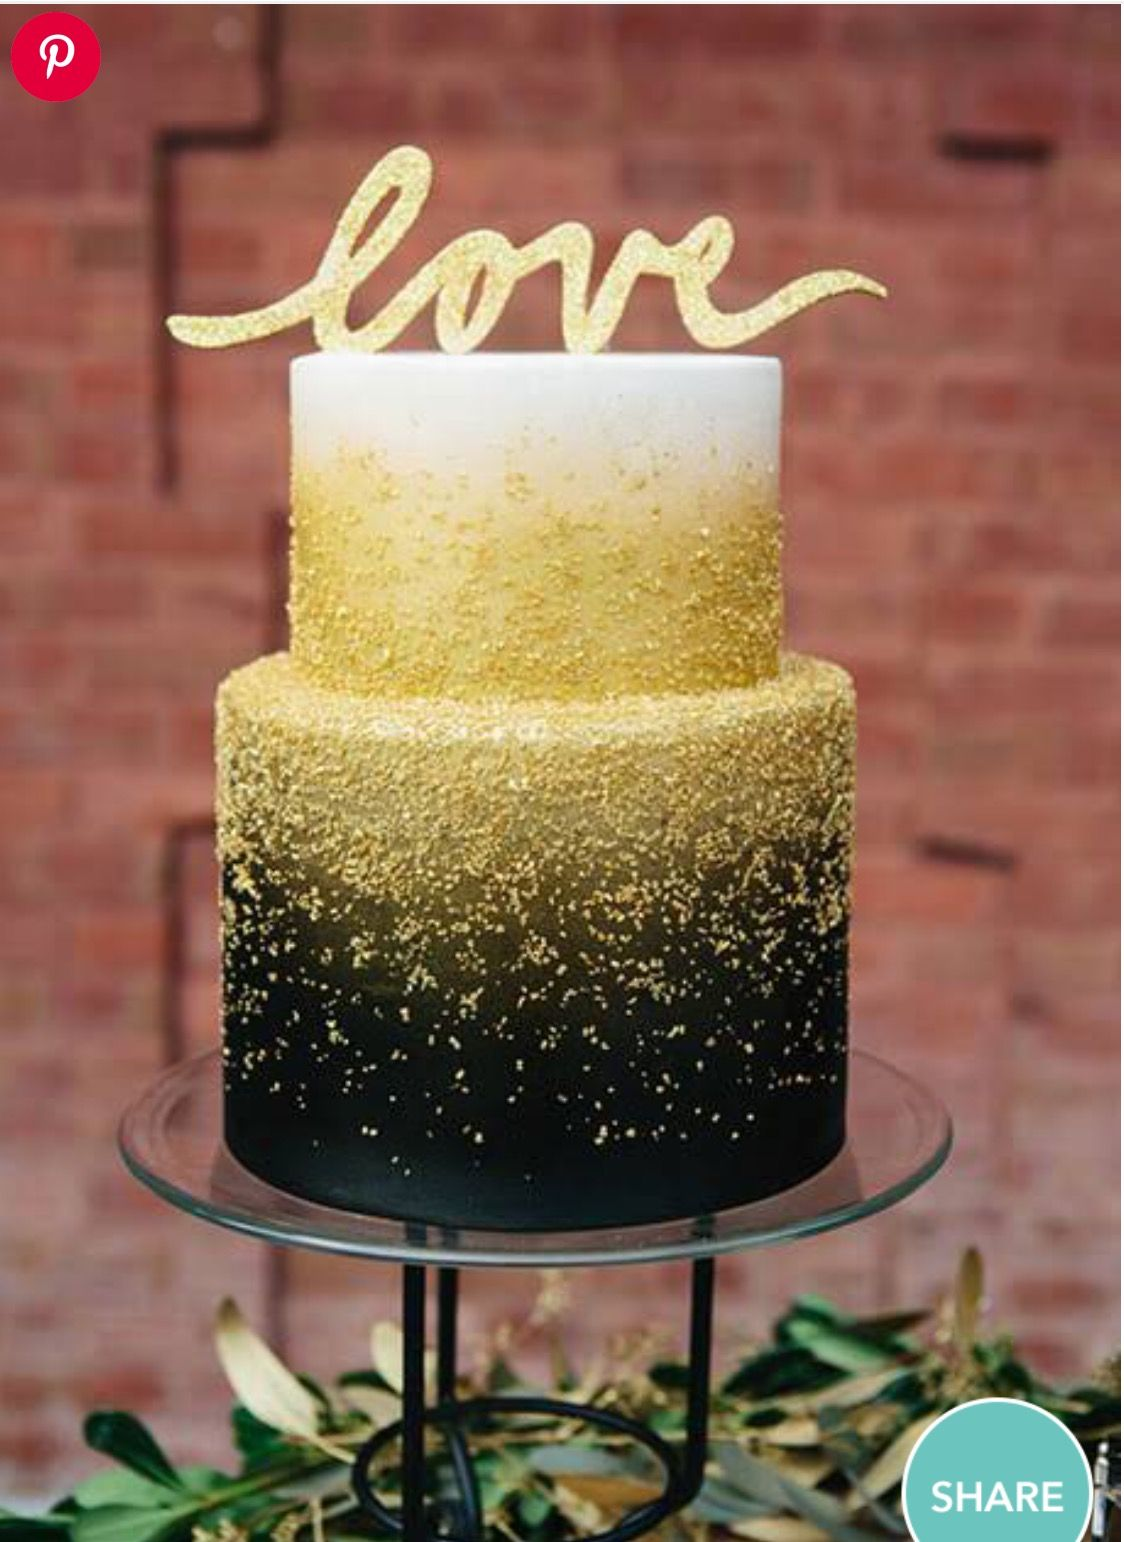 Blow your mind beautiful wedding cakes from brides.com | Cakes I ...